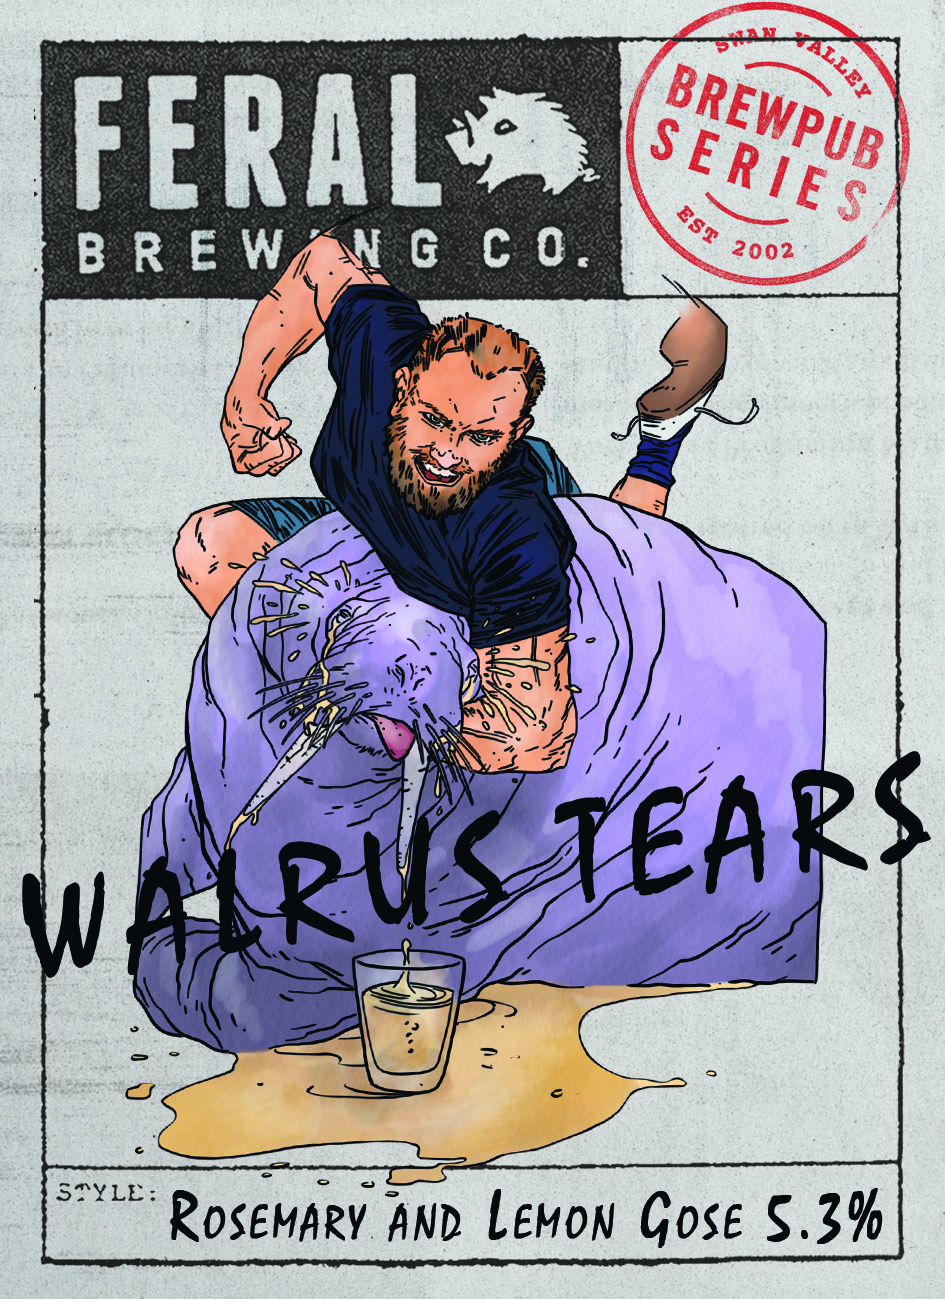 Feral-BrewPub-Artwork-Walrus-Tears-Decal-FINAL